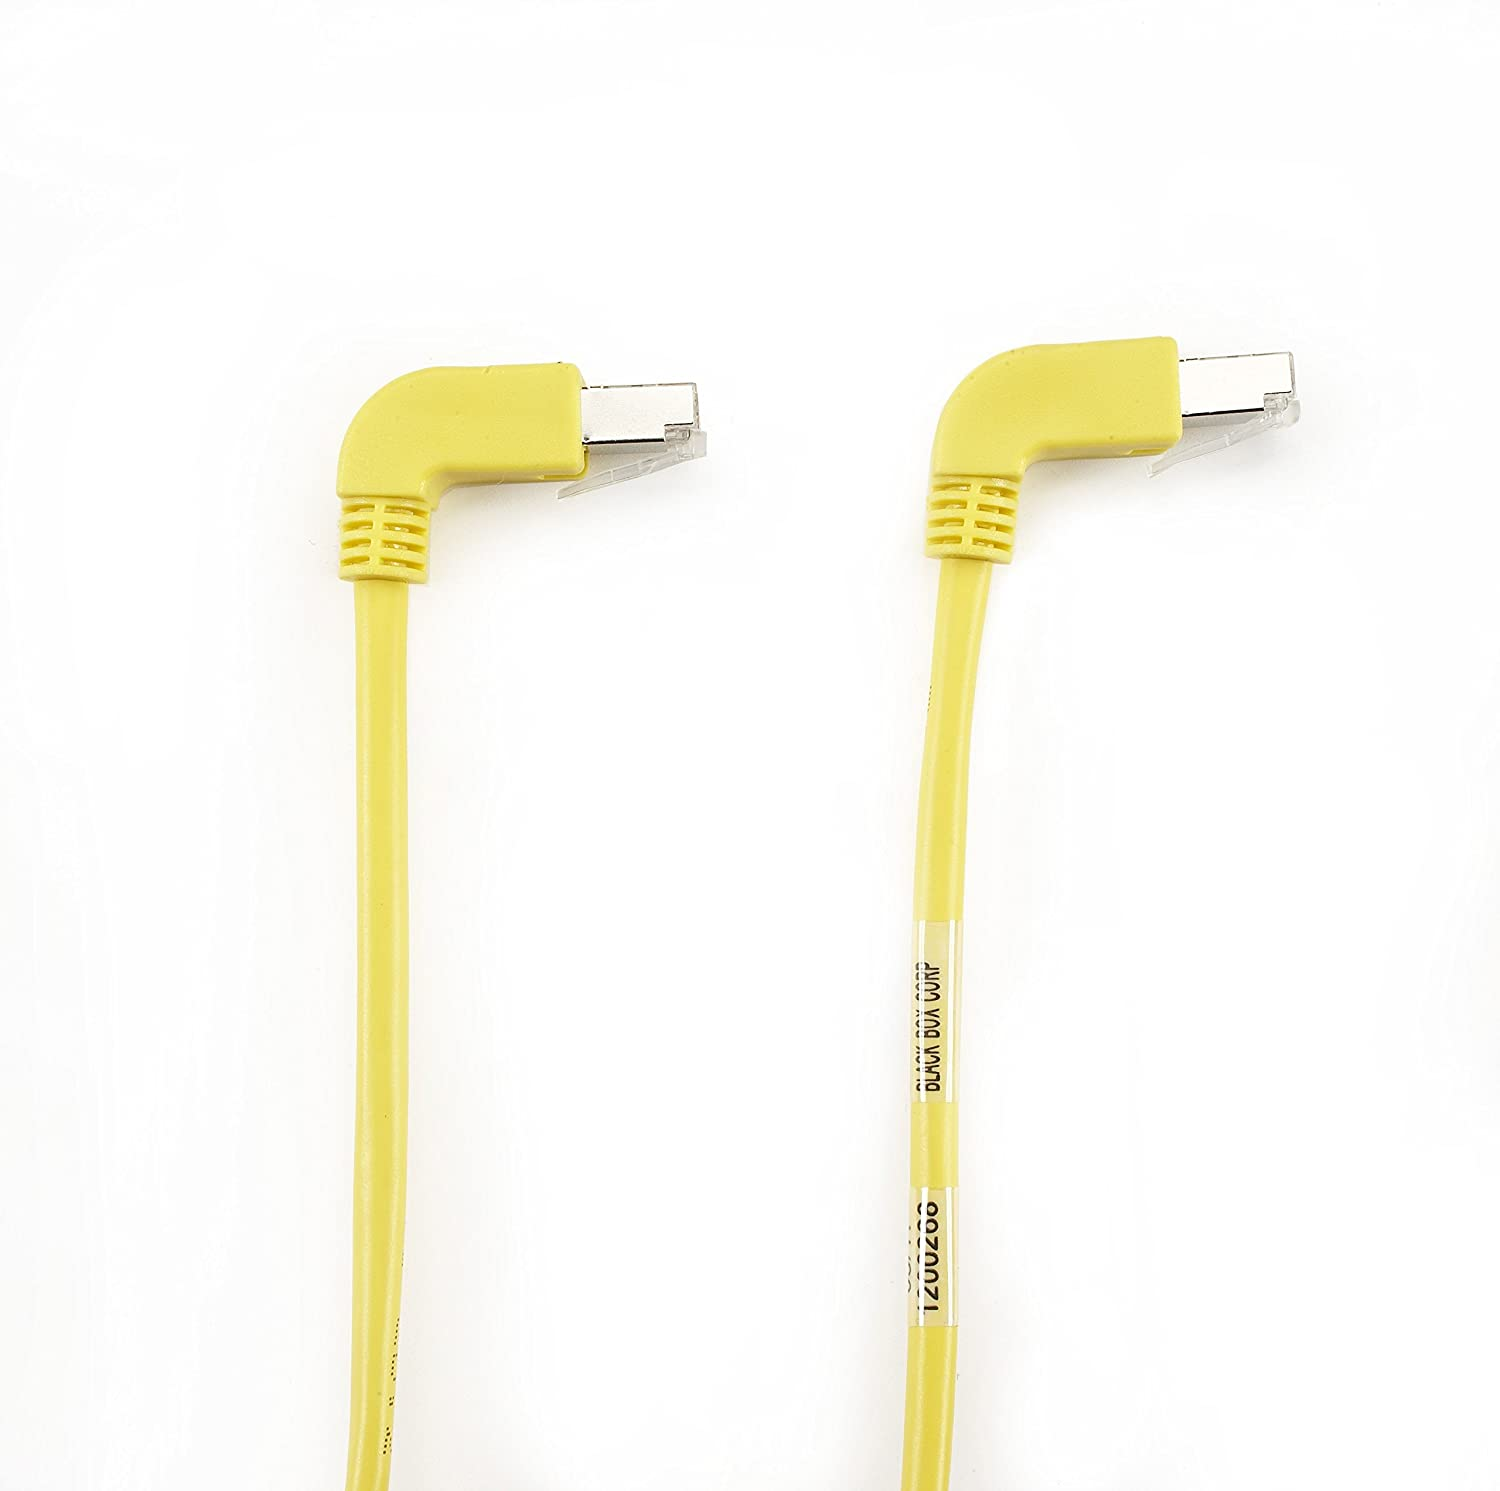 1FT YL CAT5e 100MHz Angled Patch Cable F//UTP CM Down-Down